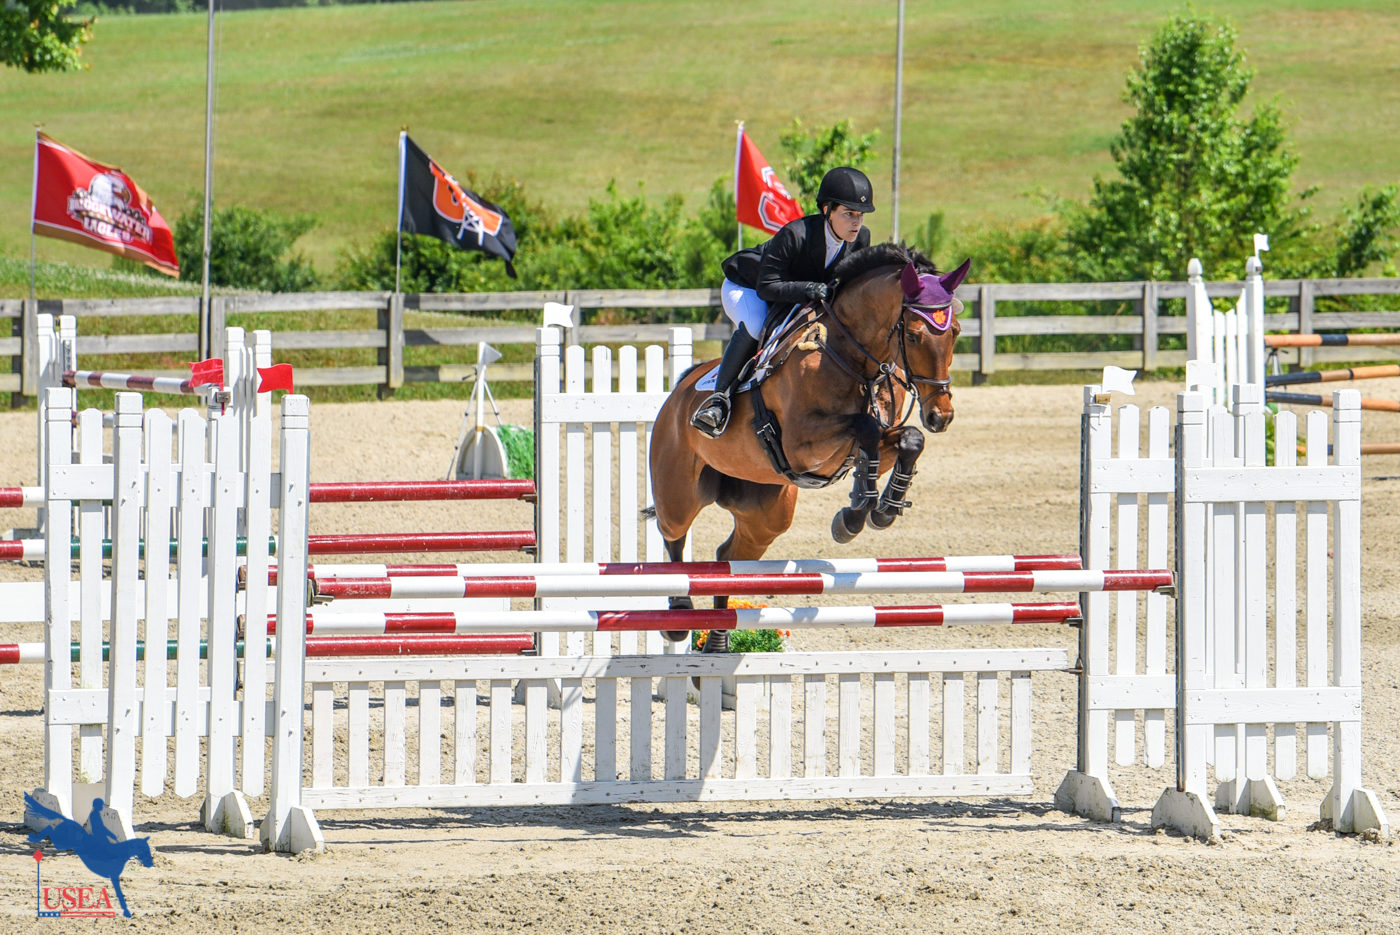 Samantha Messamer and Finn McCool were picture perfect in the Preliminary for Clemson.